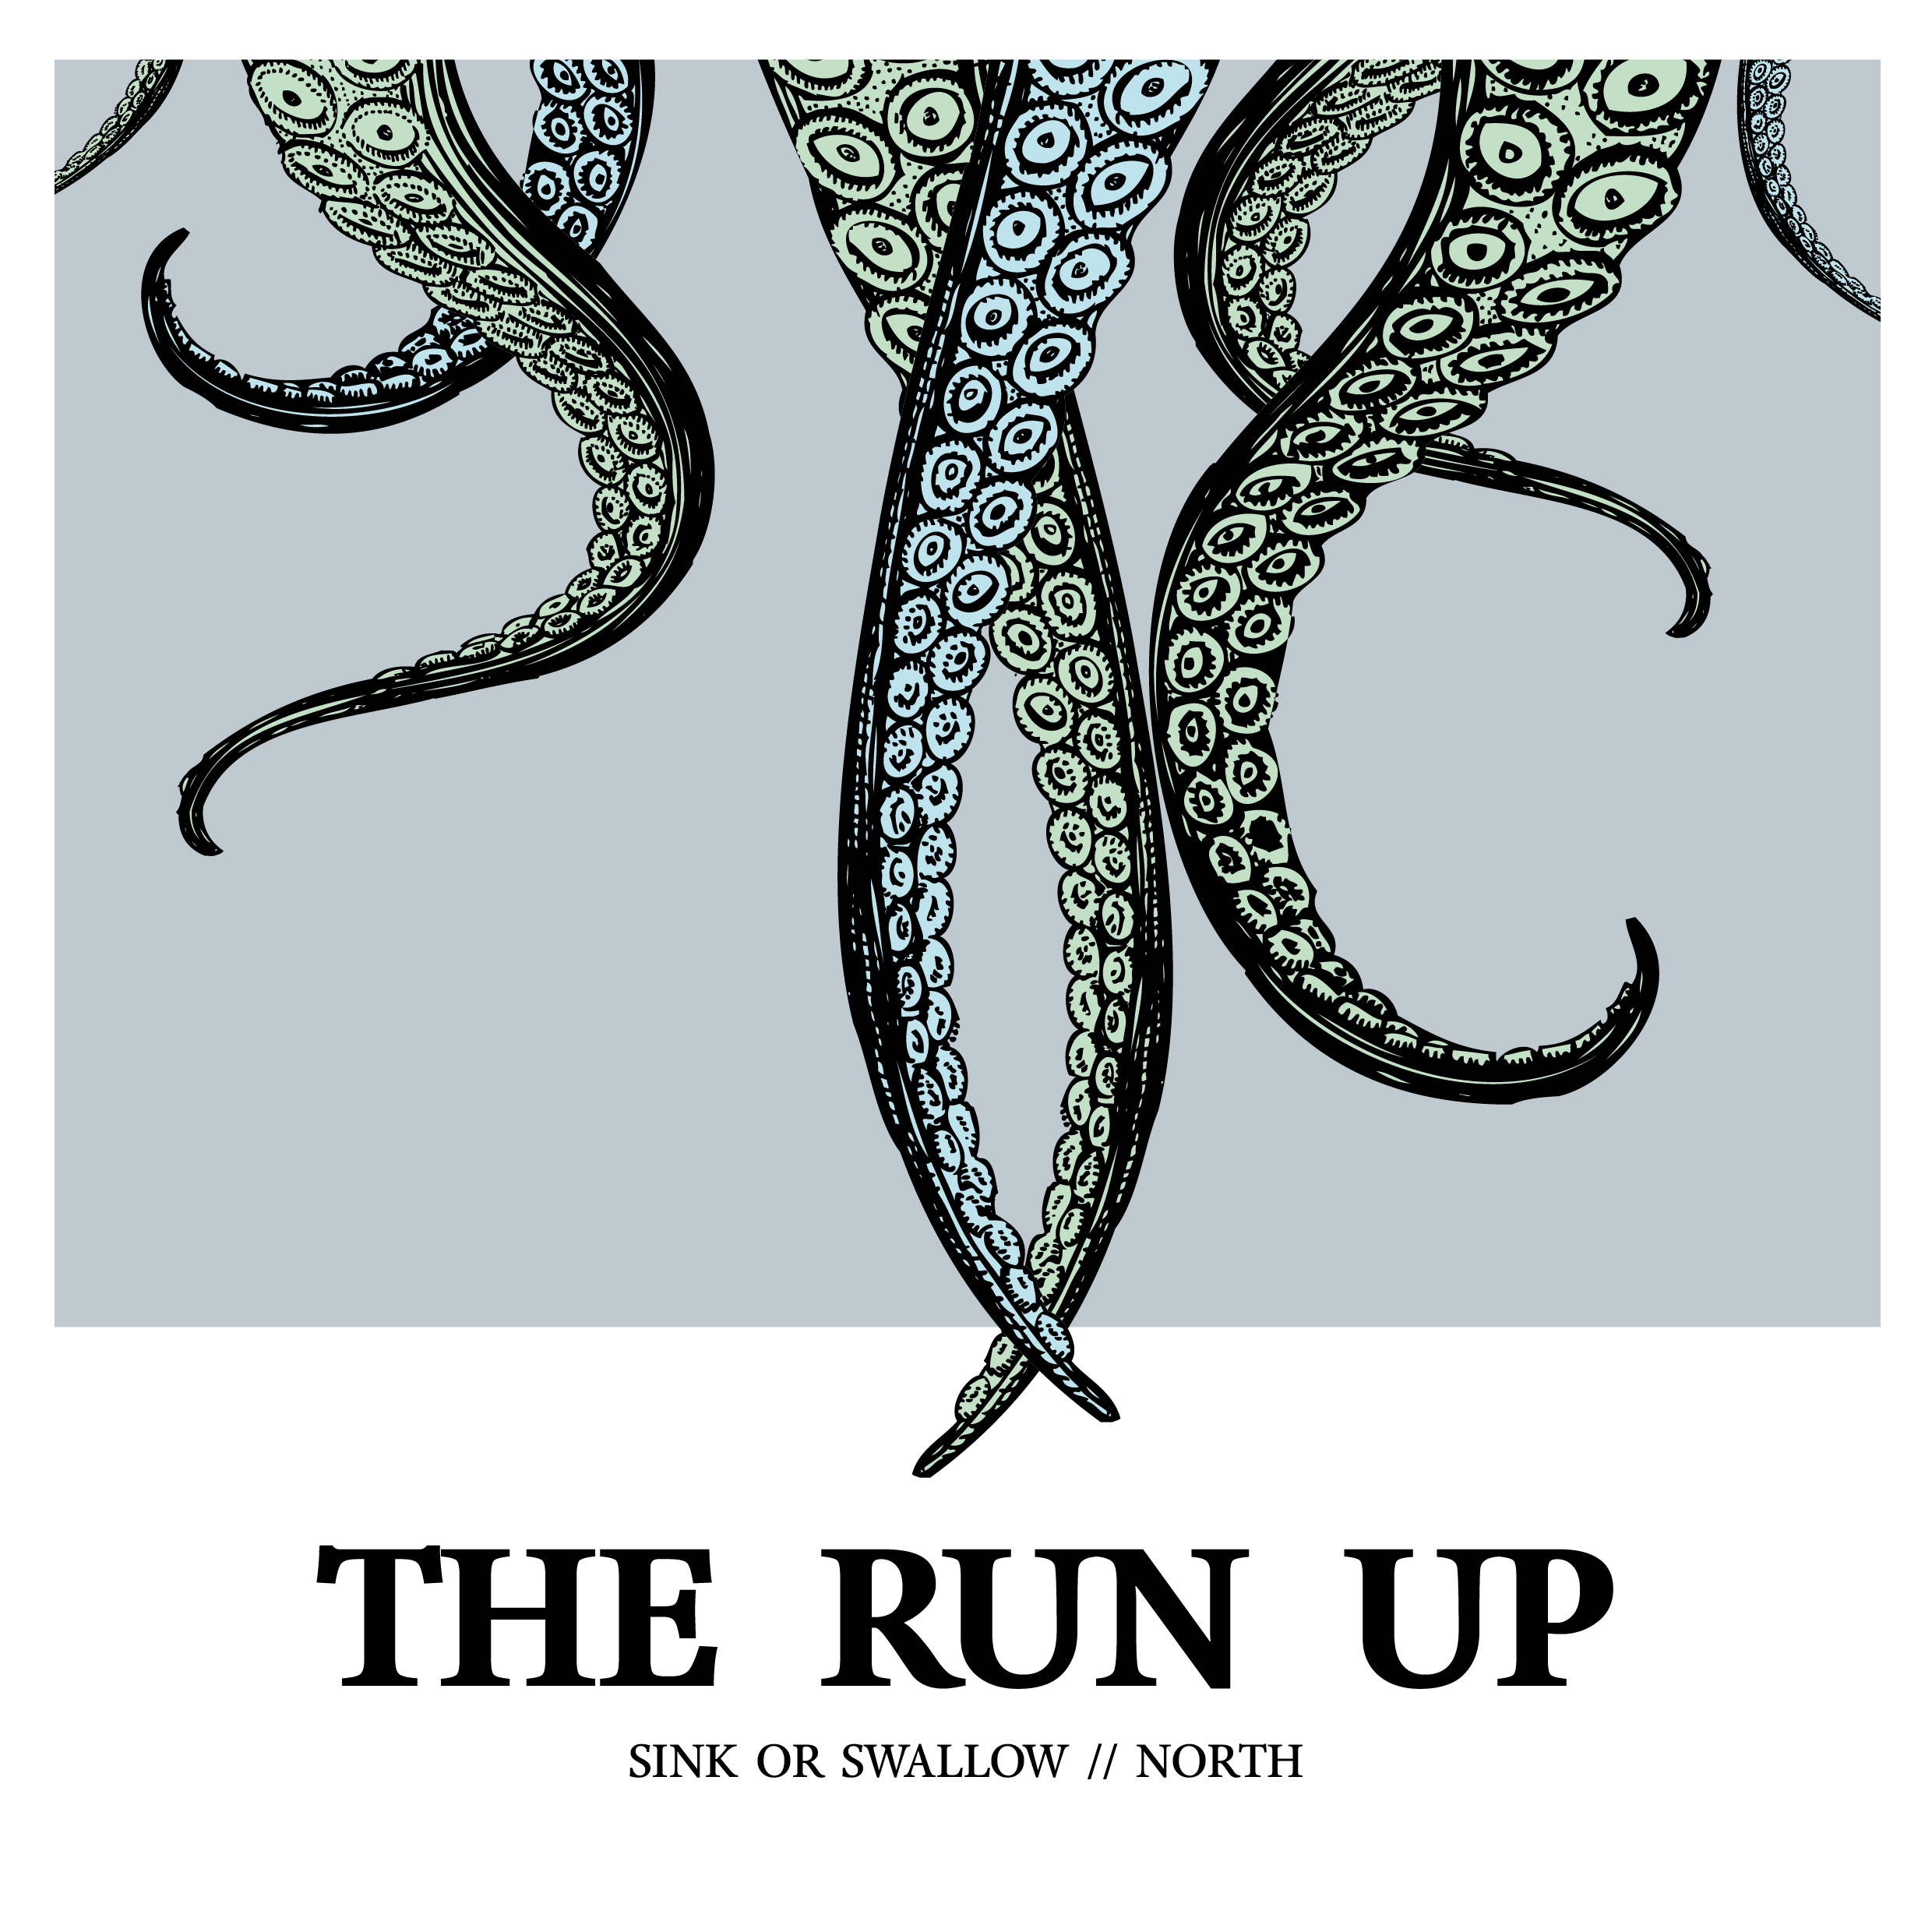 The Run Up - Sink or Swallow // North